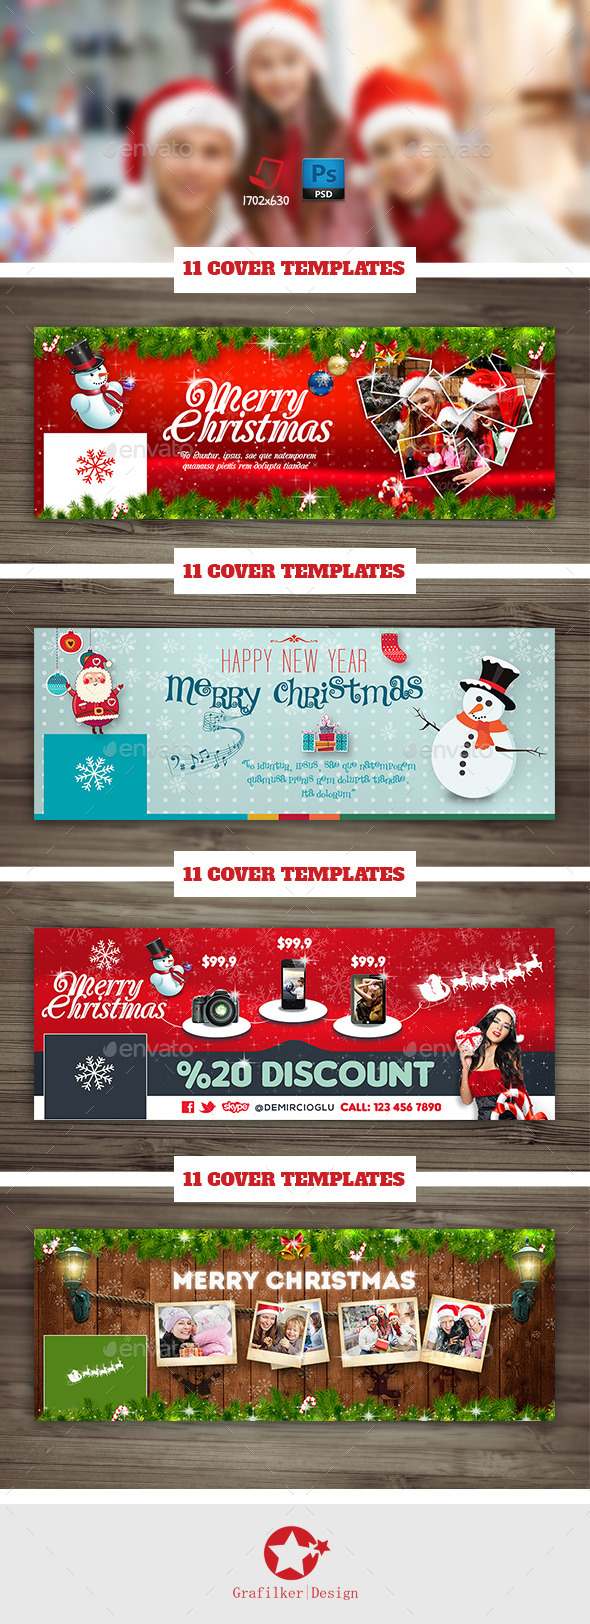 GraphicRiver Christmas Timeline Cover Bundle Templates 9250561